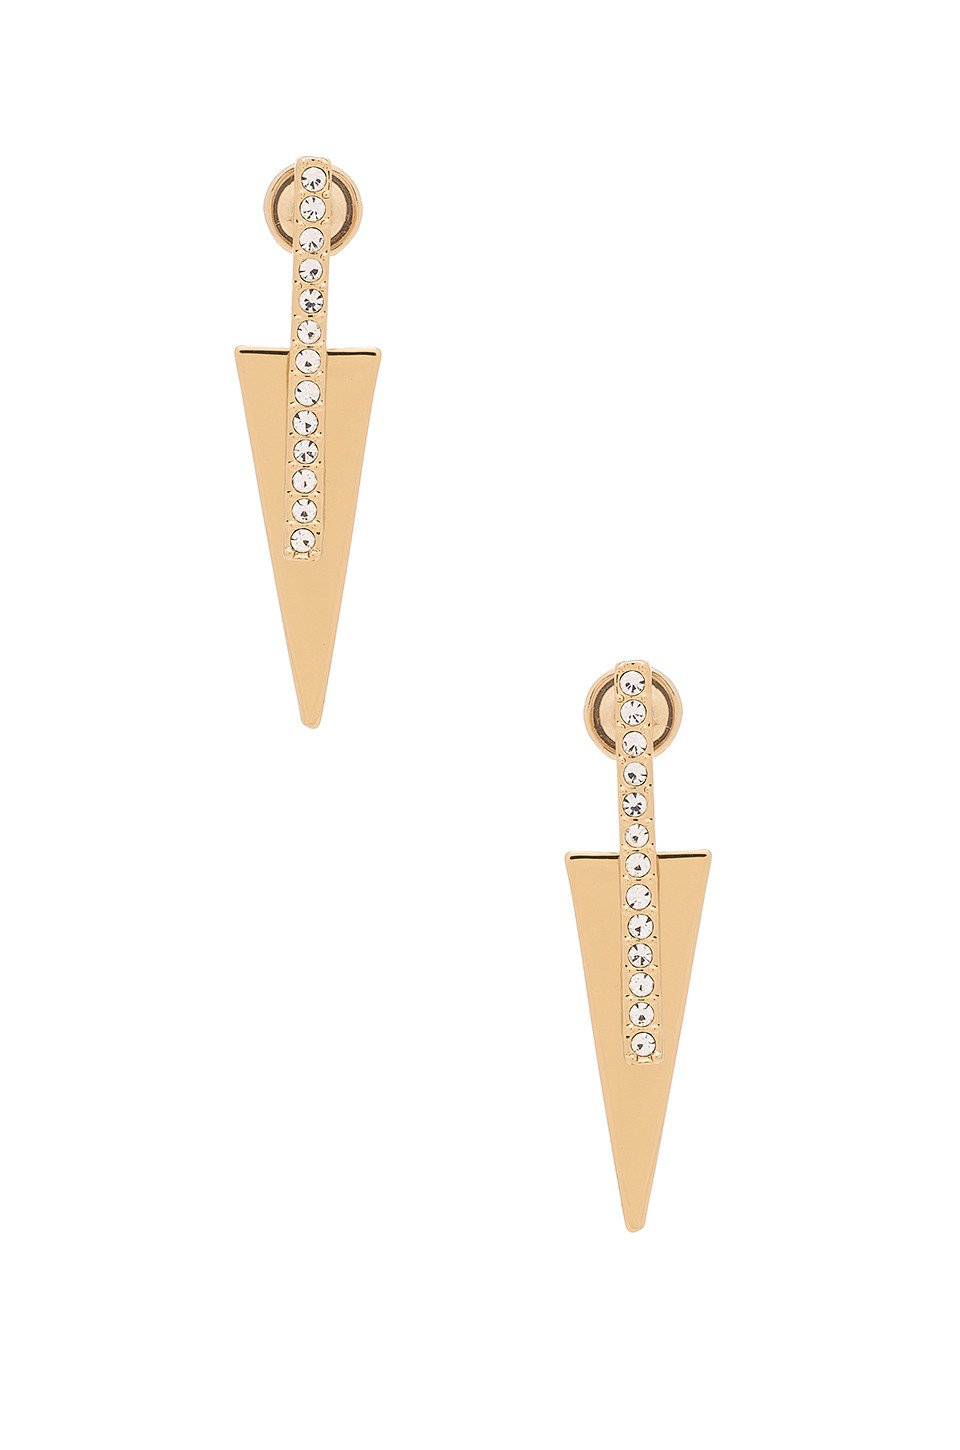 Pave Bar & Triangle Earrings - Kustom Label - 1